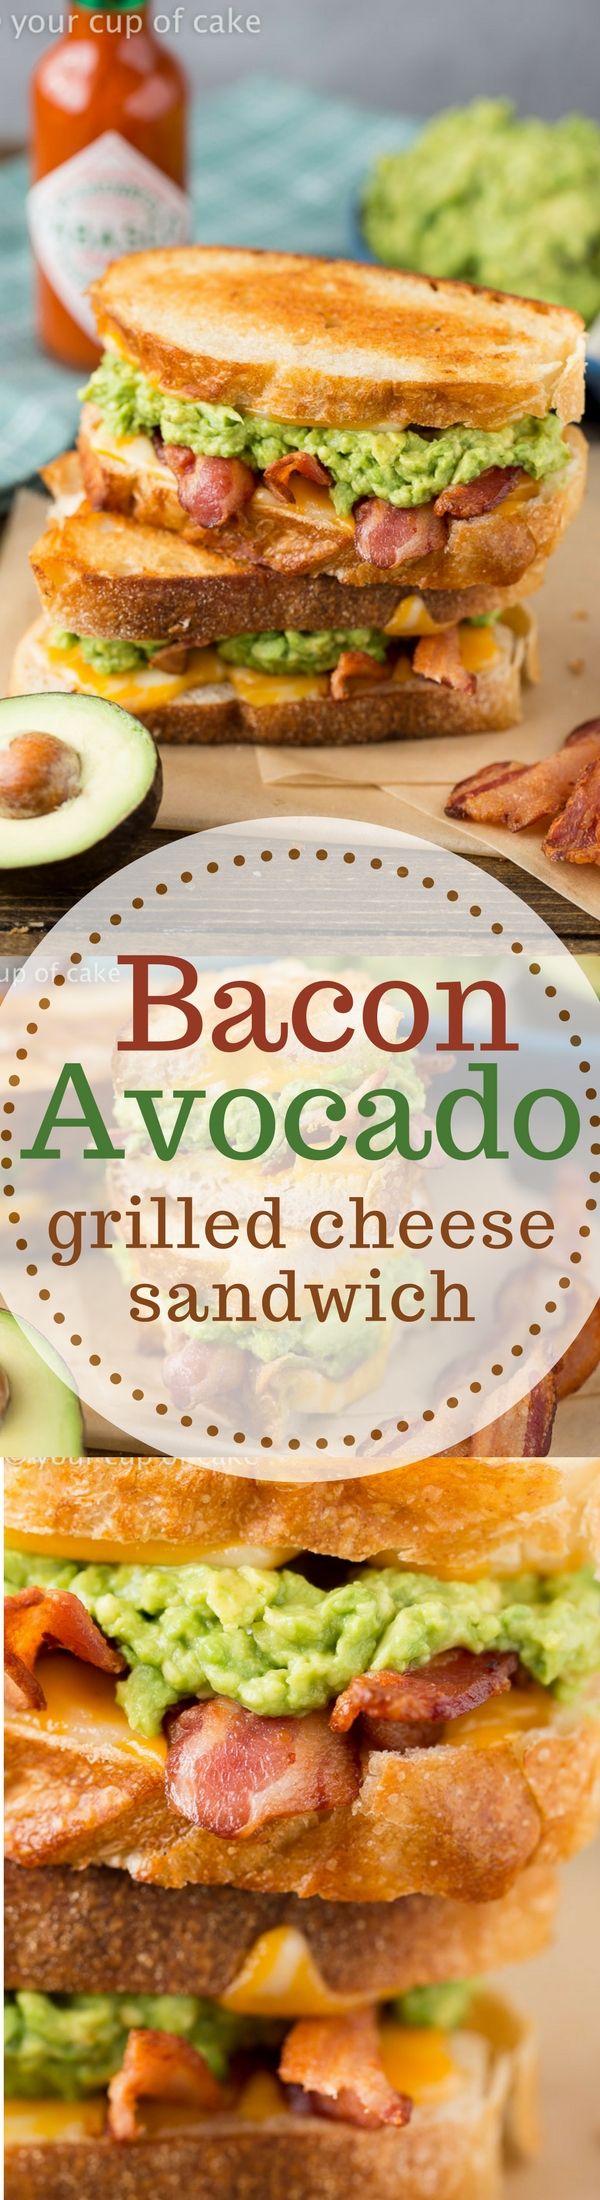 Bacon Avocado Grilled Cheese Sandwich Your Cup Of Cake